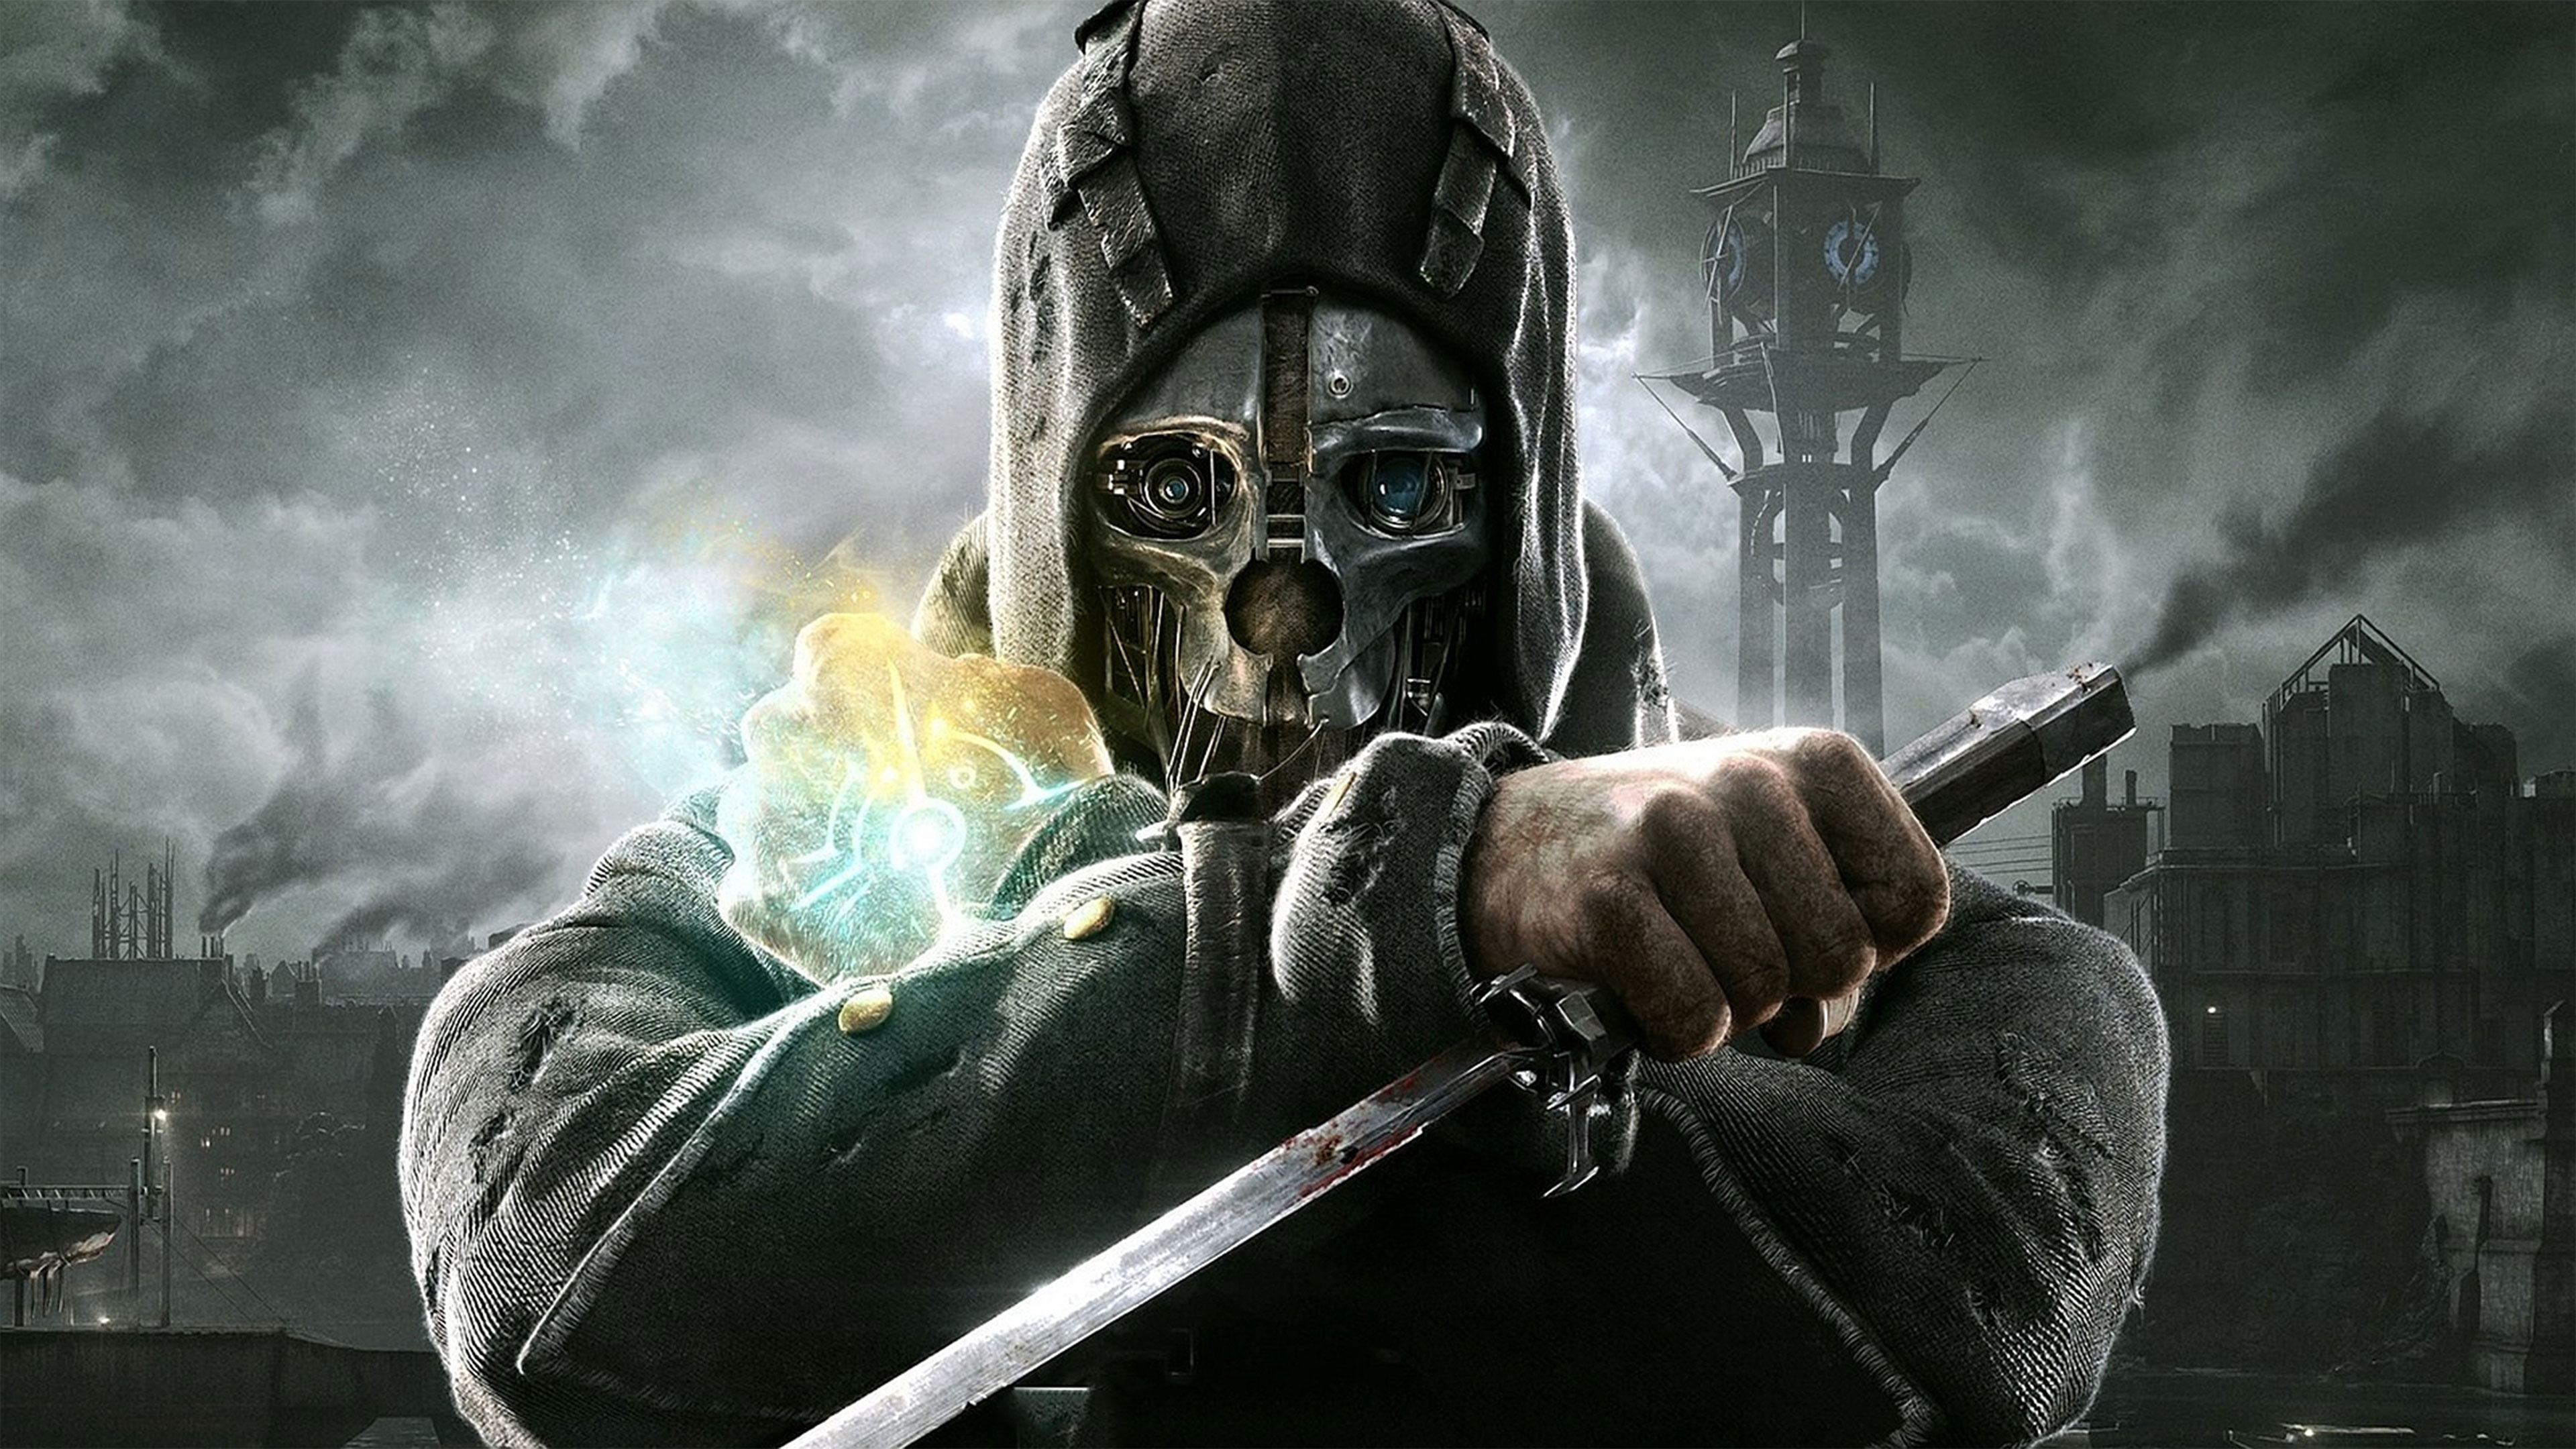 Dishonored 2 Wallpapers In Ultra HD